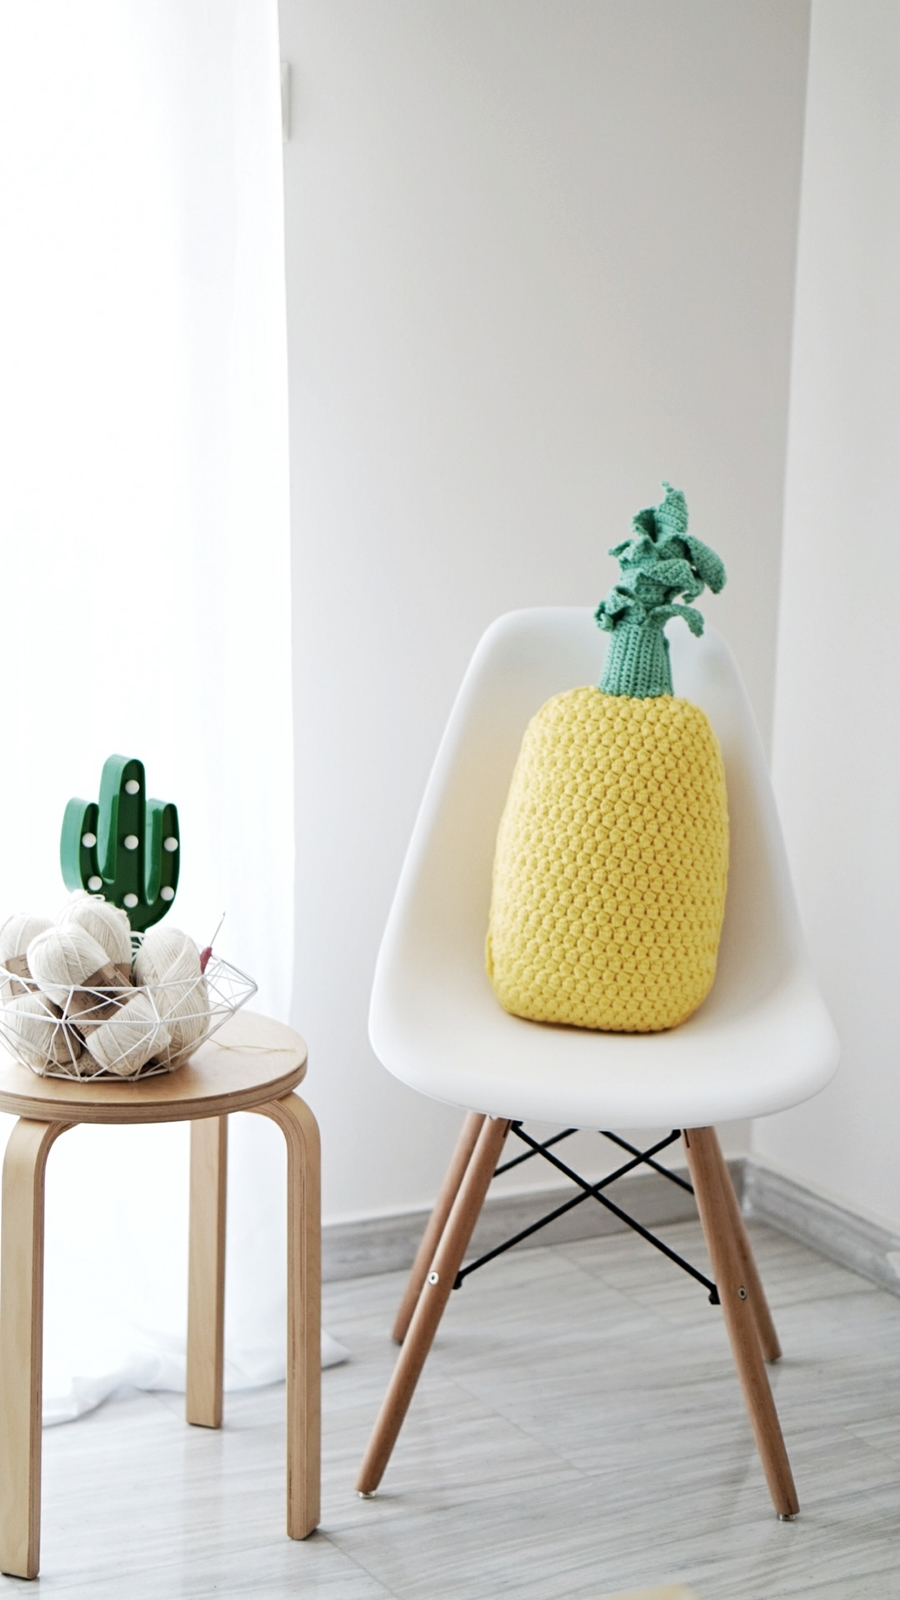 Crochet Pineapple Pillow With Hobbycraft Obsigen